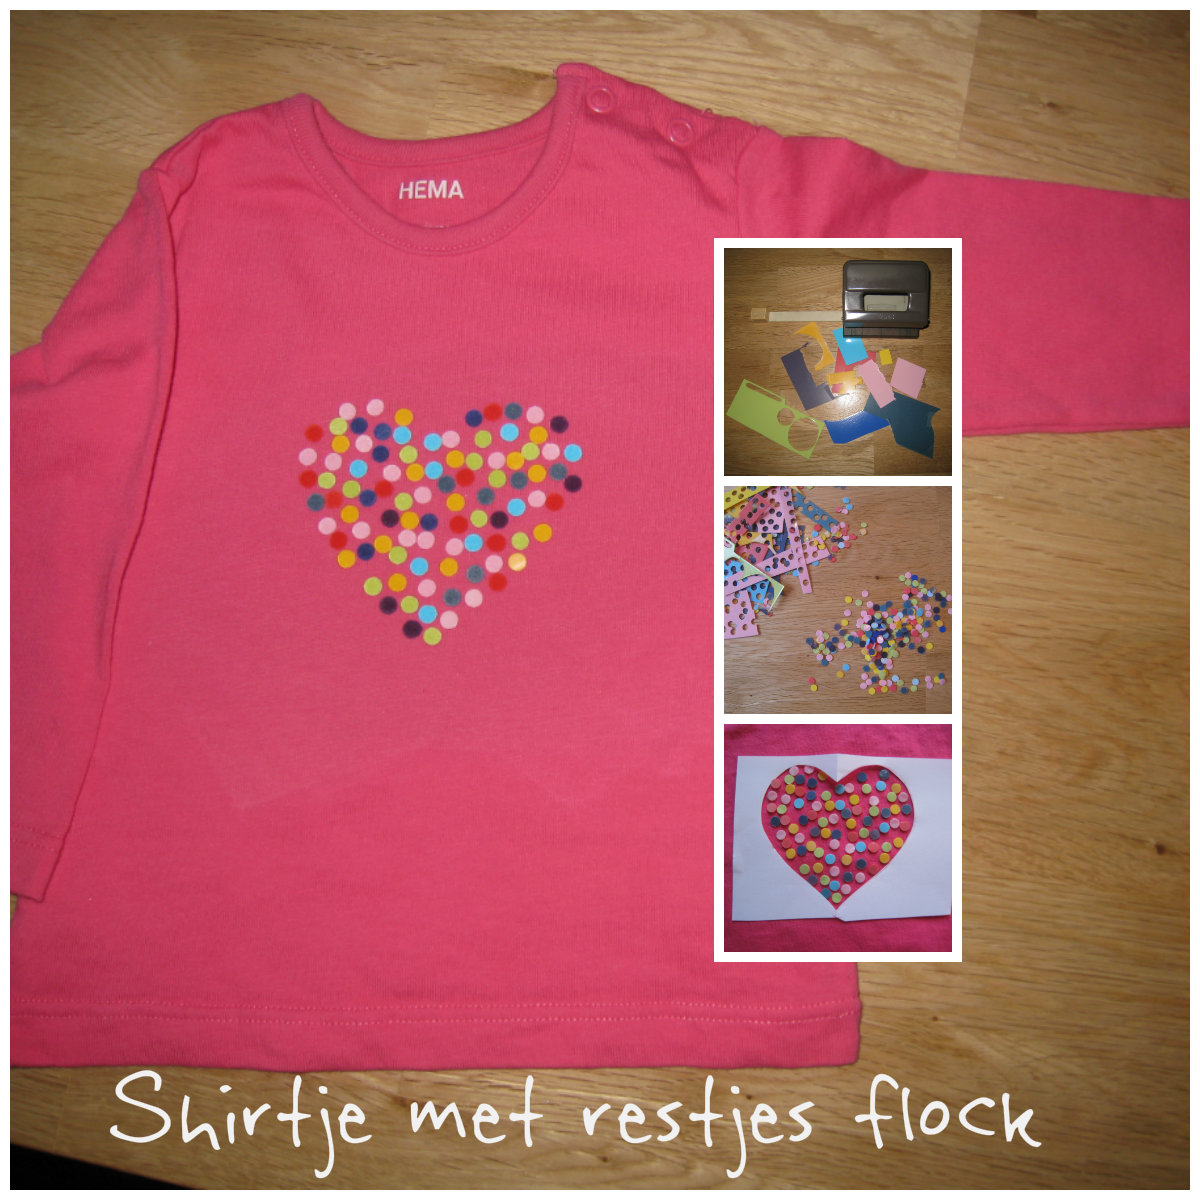 Applicatie met restjes flockfolie